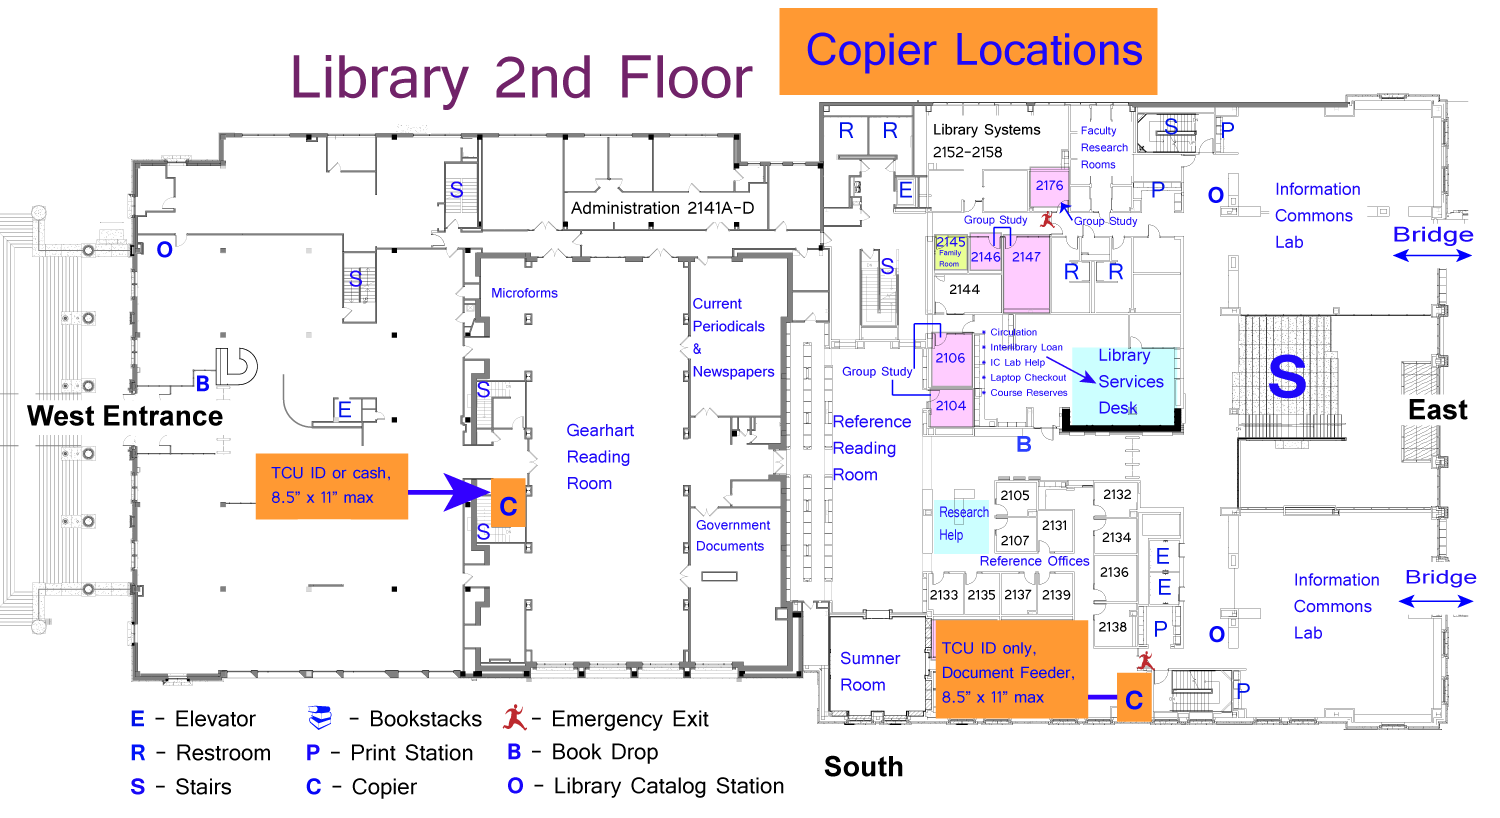 library floor plans maps and directions tcu mary couts burnett visitor stations catalog and database search